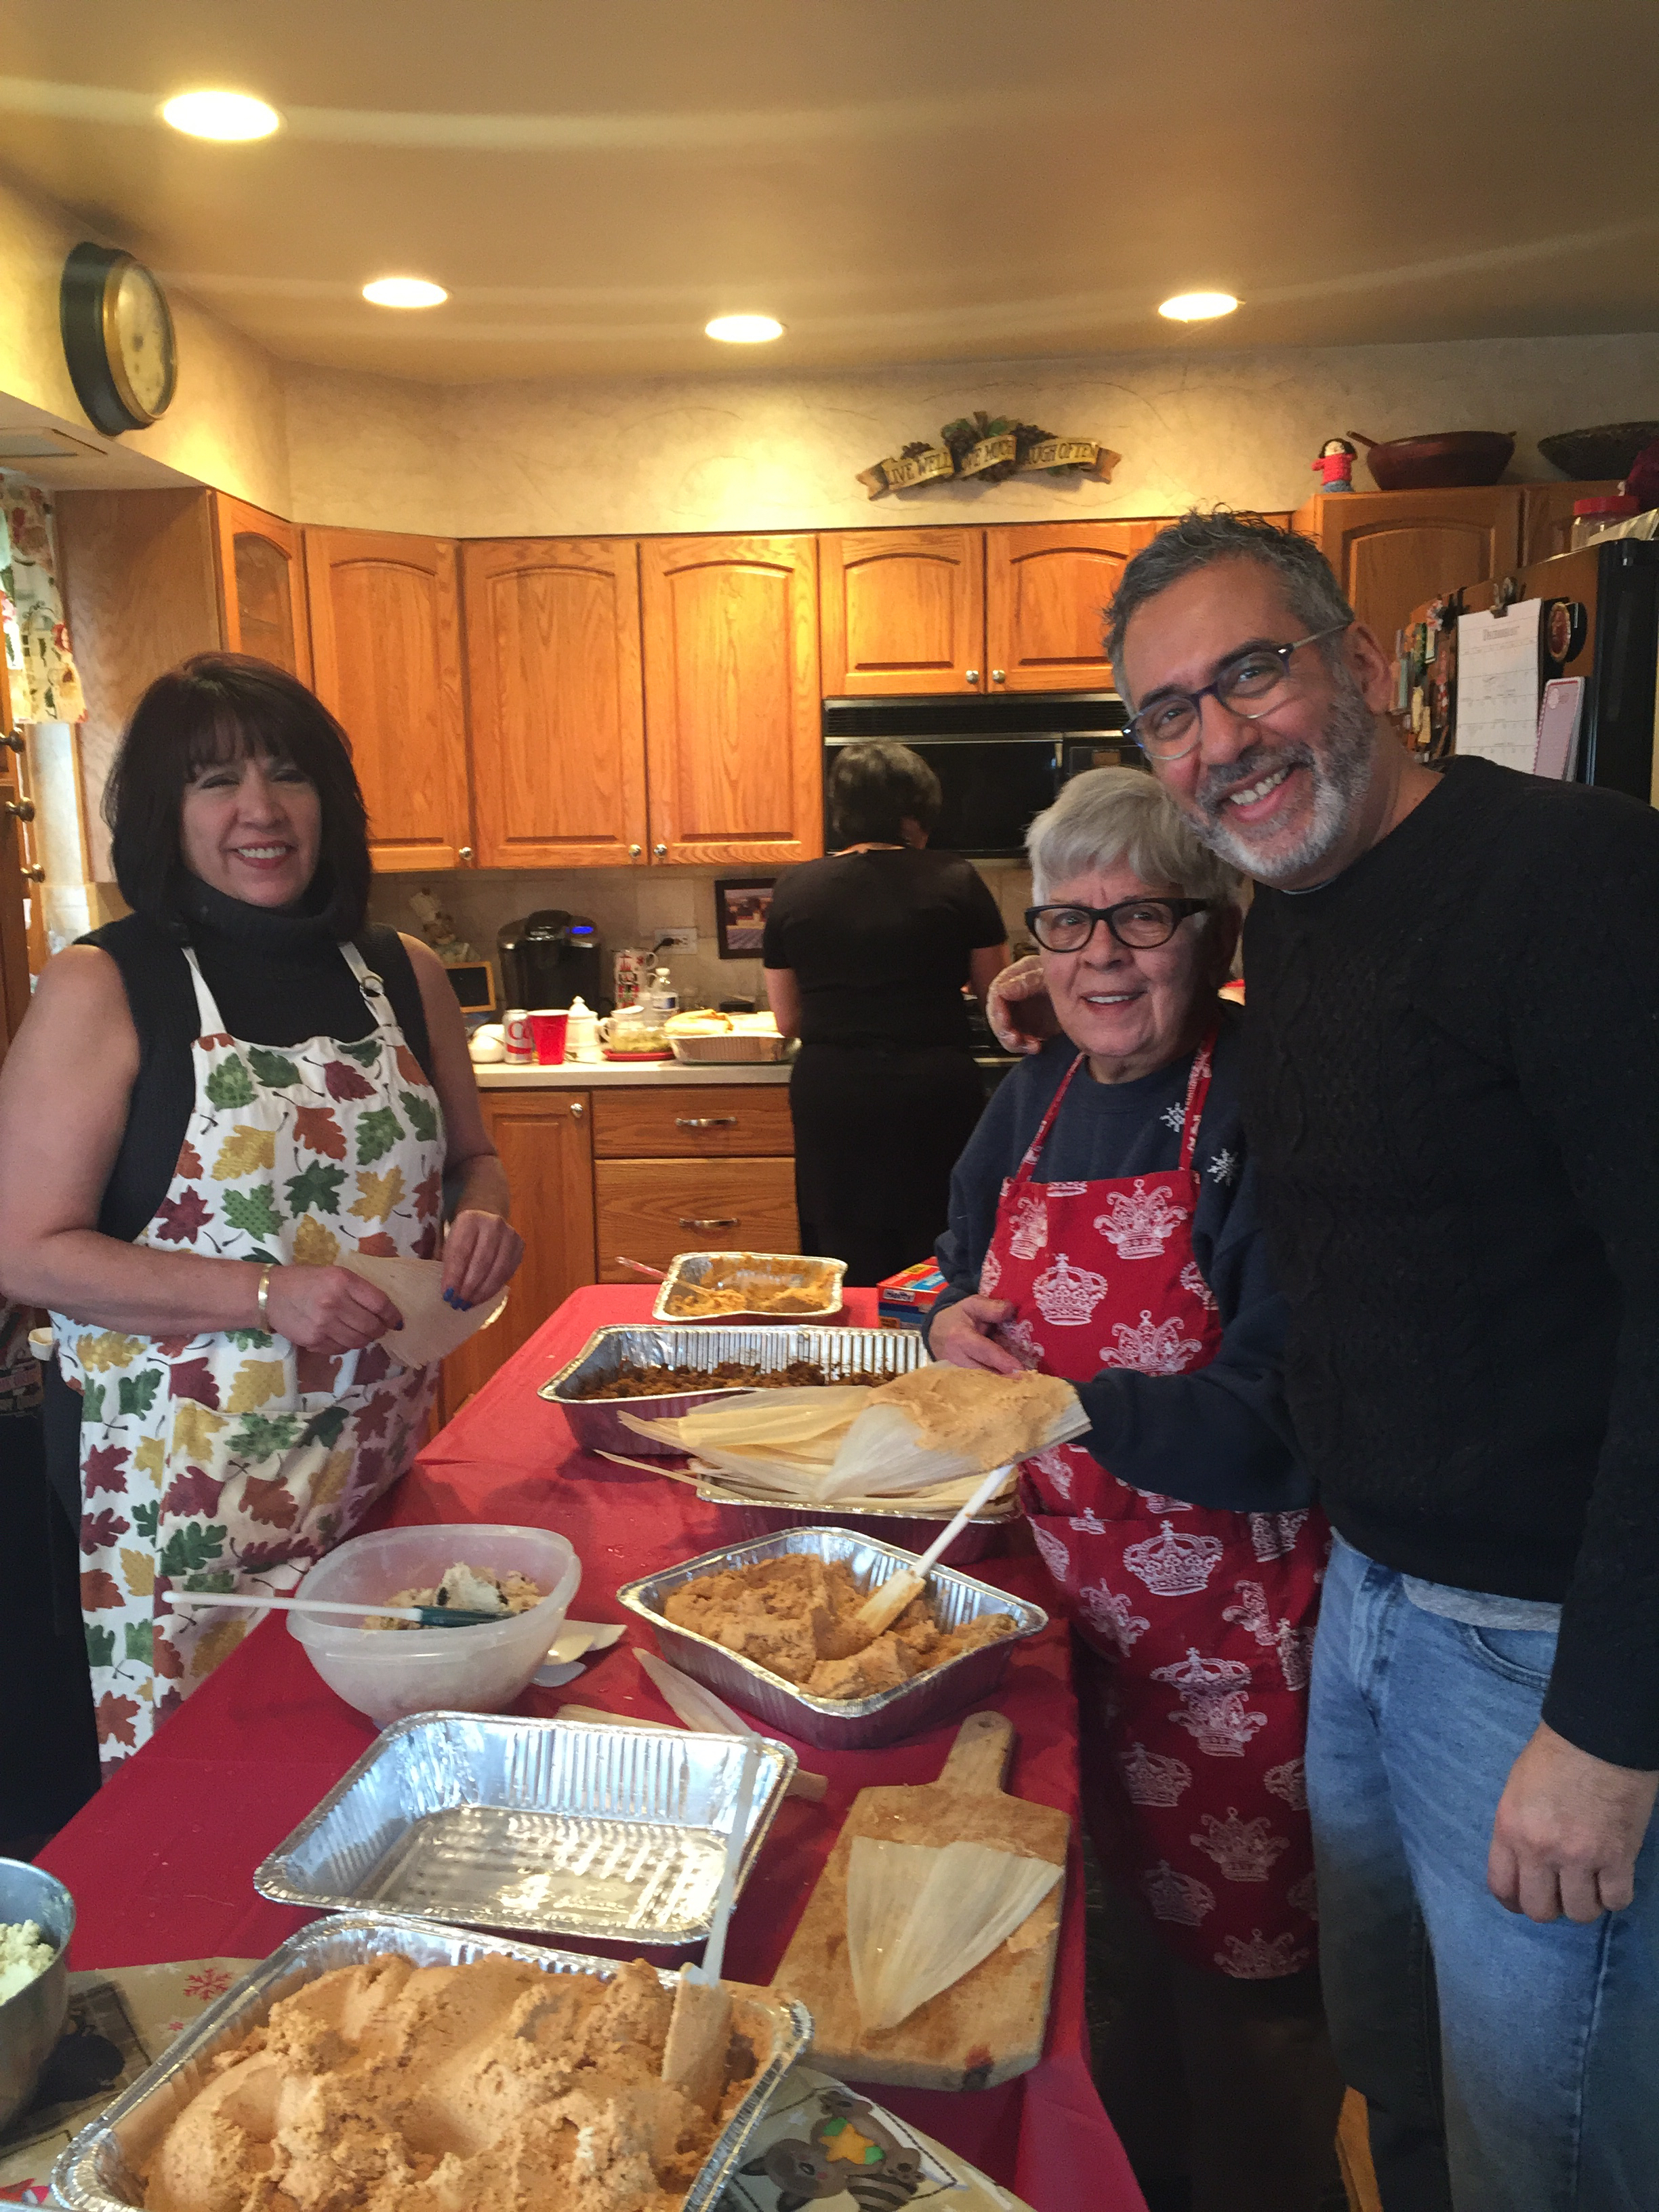 Morning Shift host Tony Sarabia makes tamales with his mother and oldest sister, Alida. (Courtesy of Tony Sarabia)